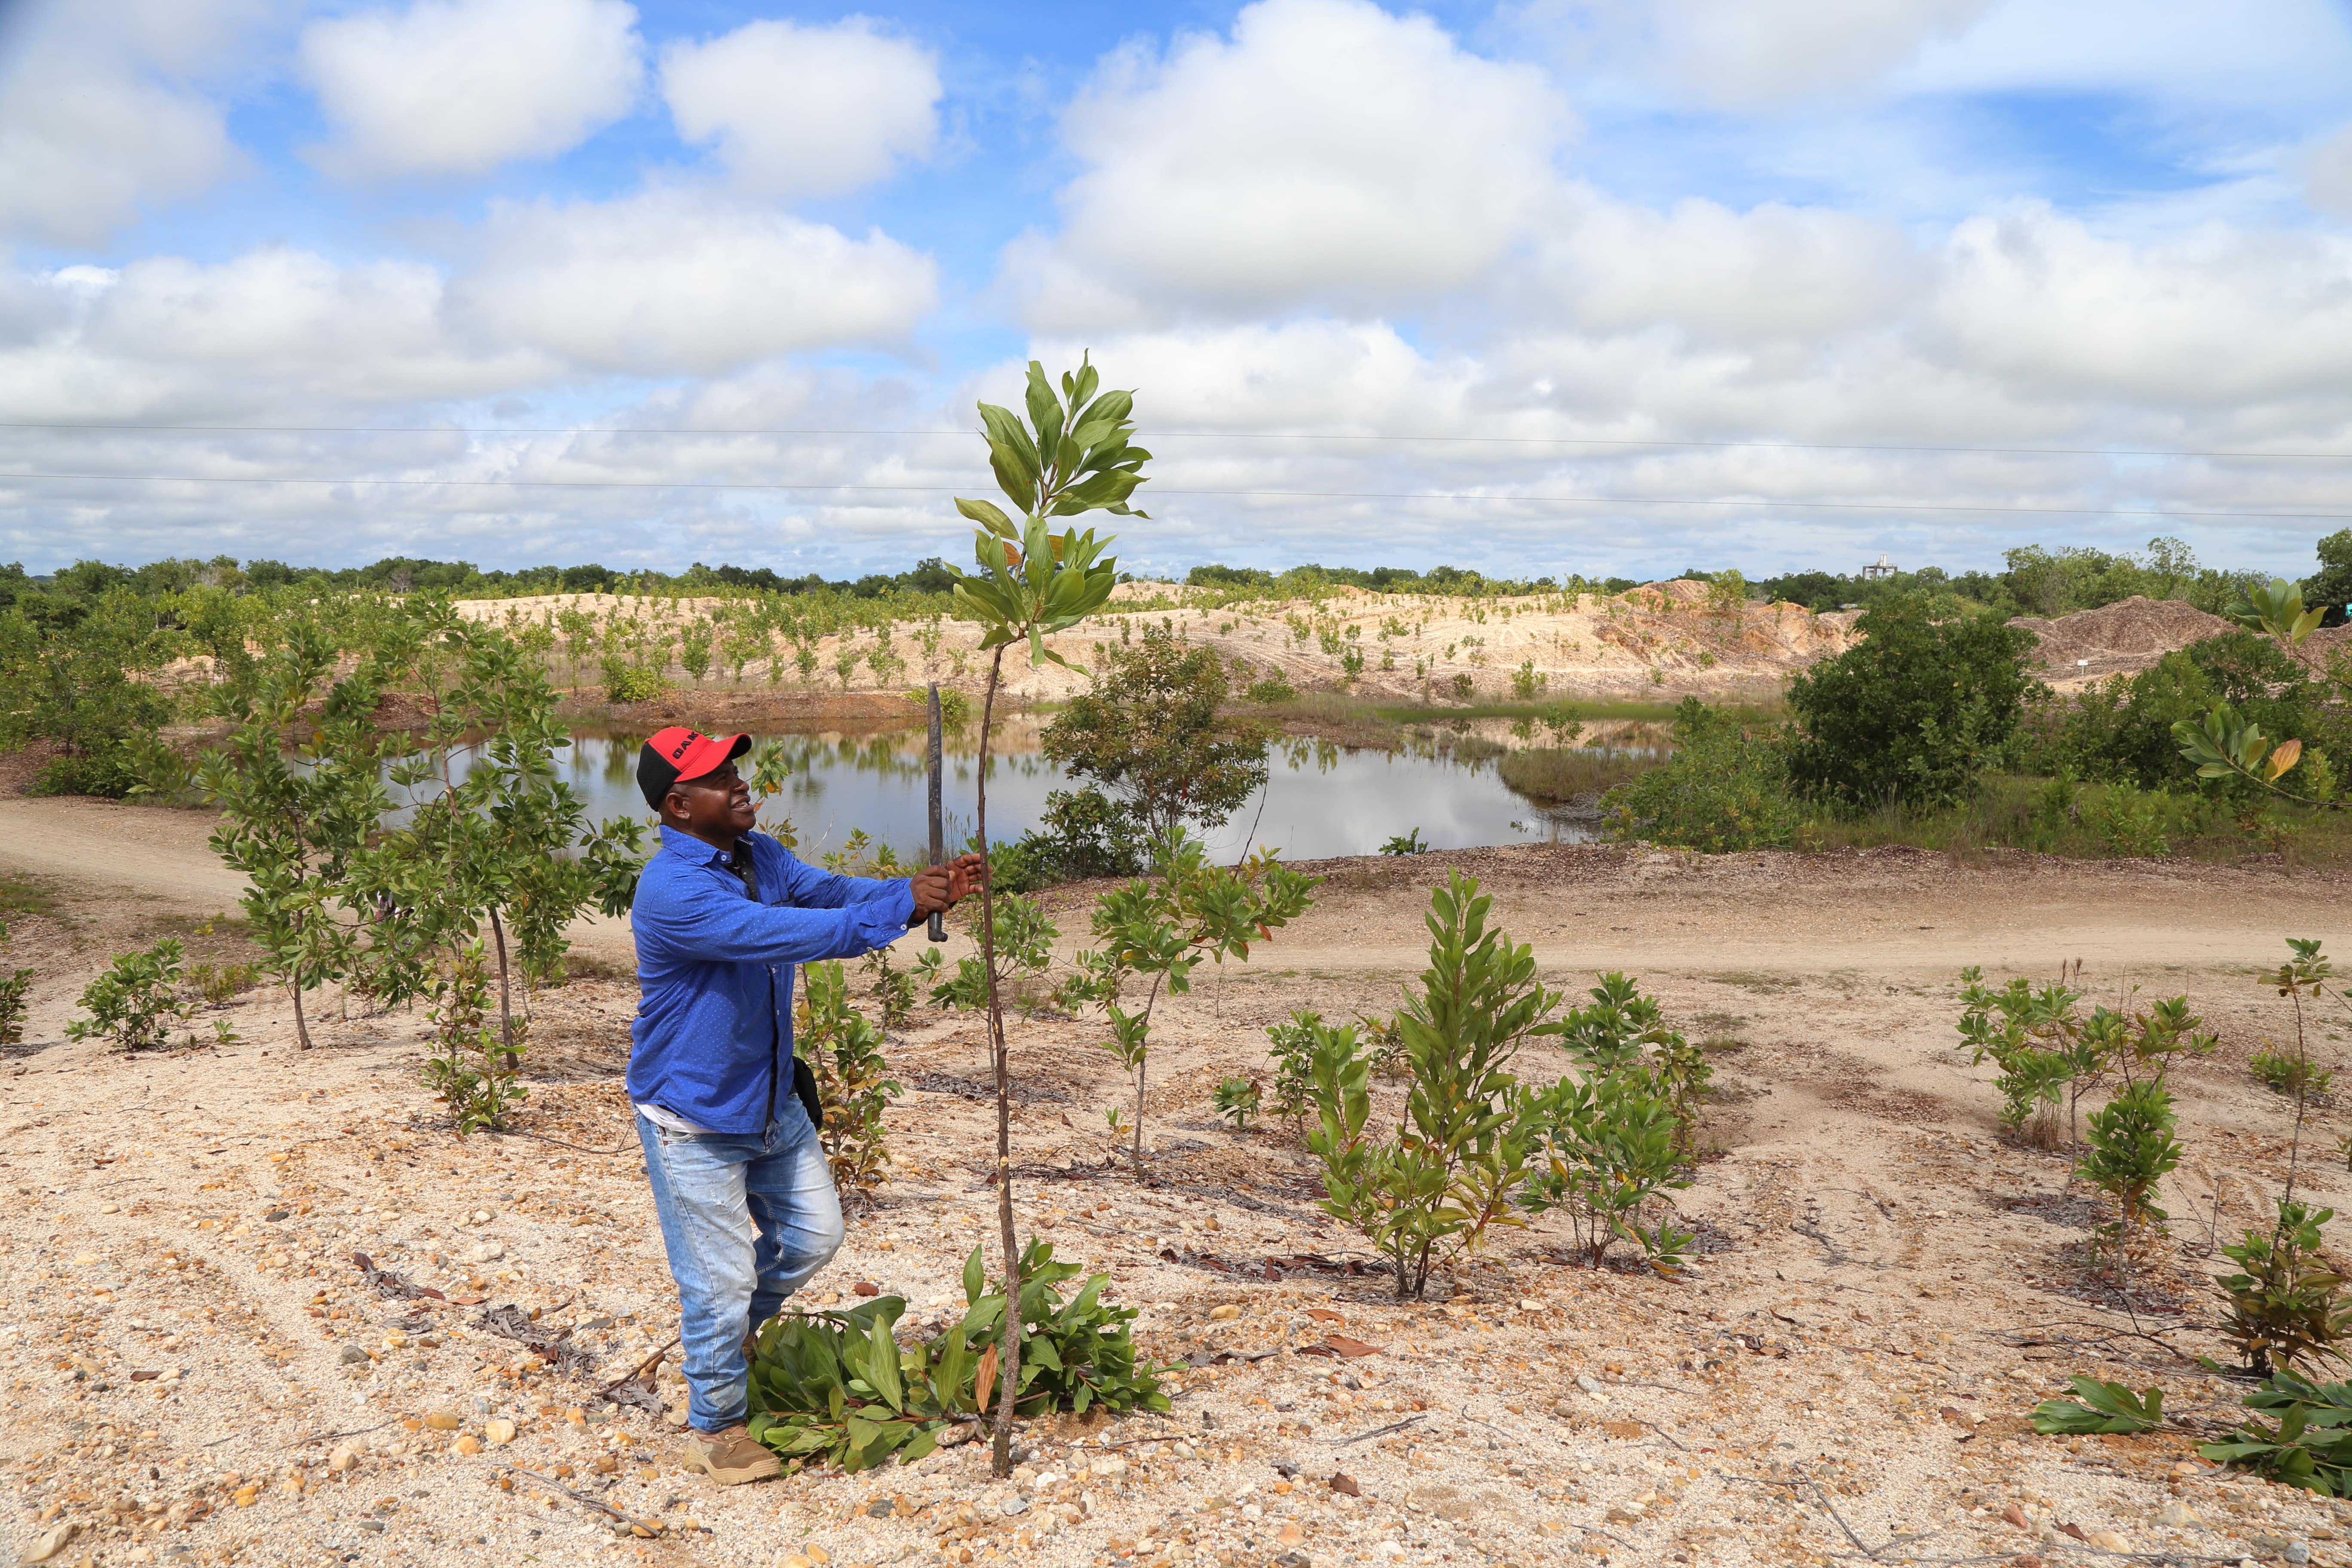 A man plants a thin tree in a semi-arid environment.